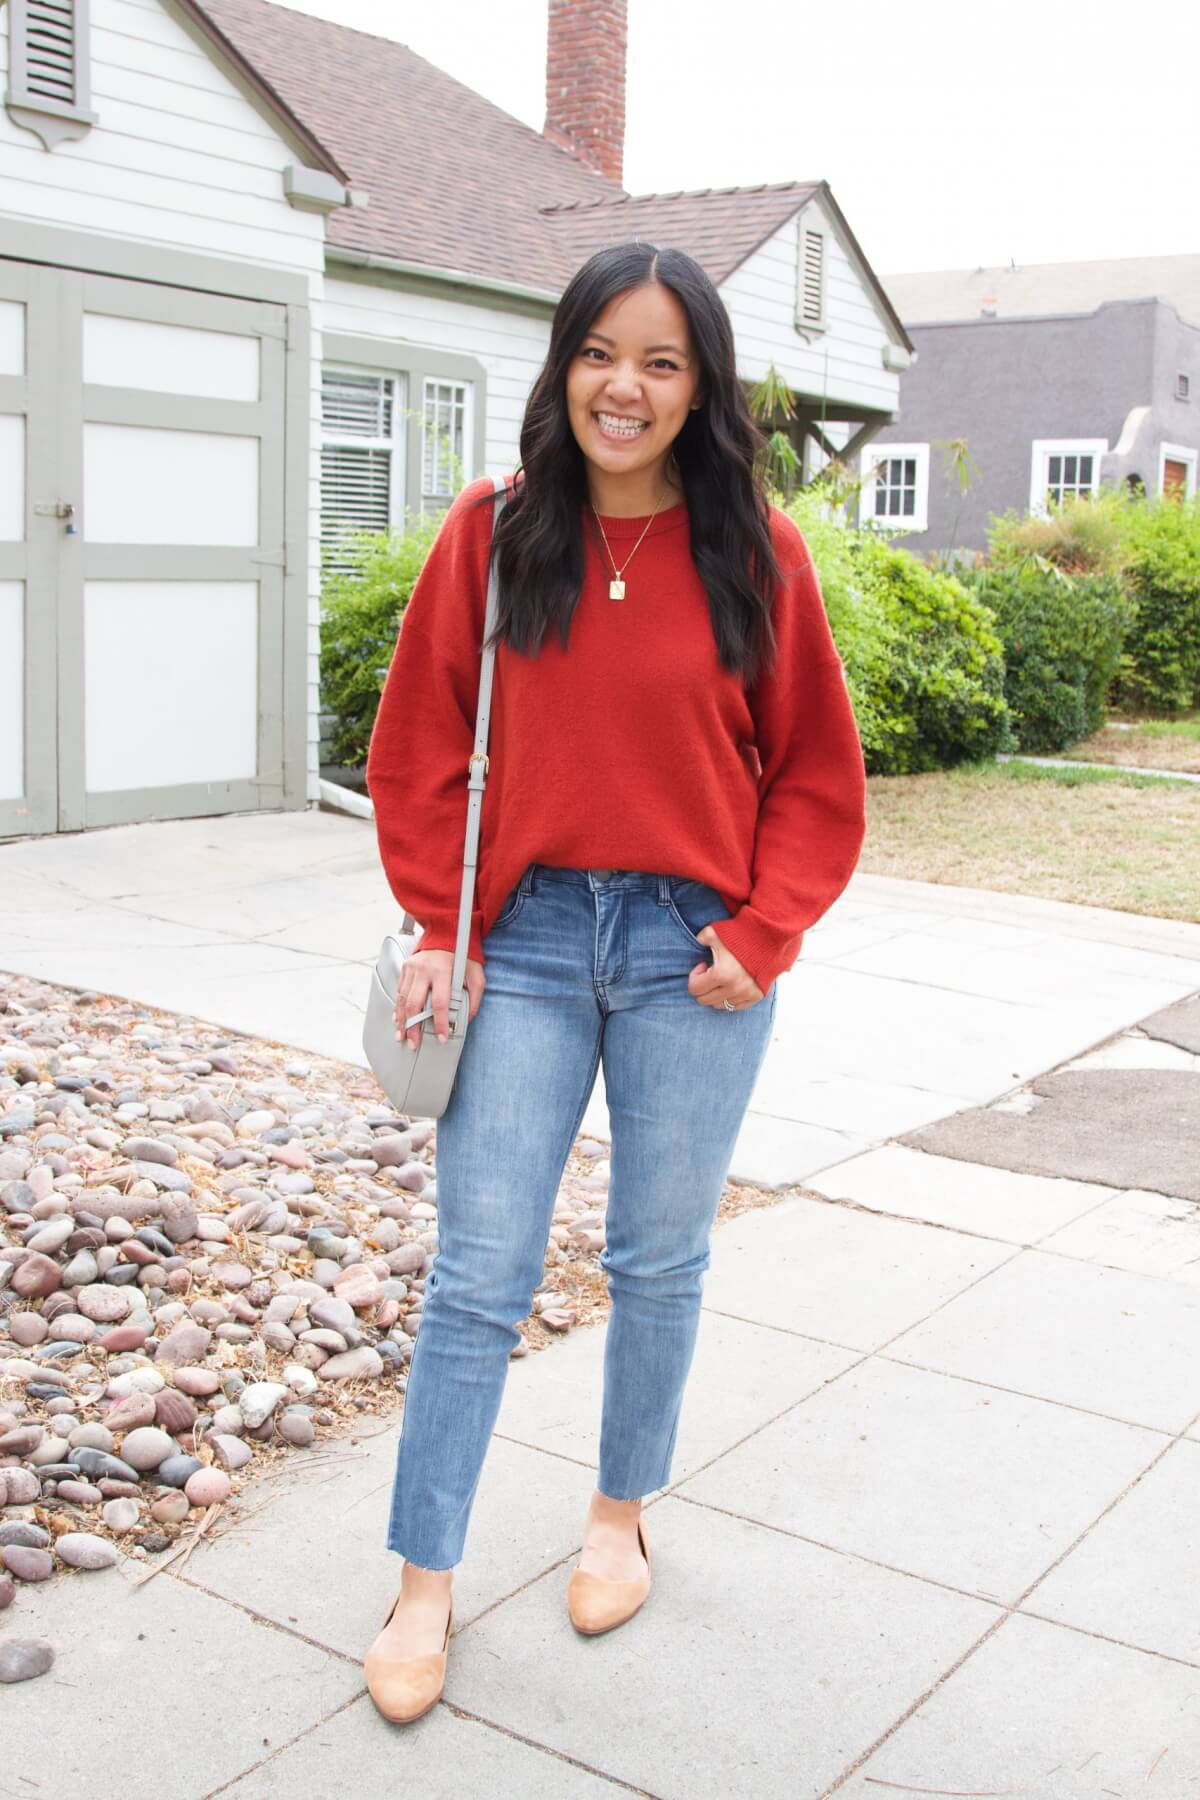 Straight Leg Jeans Outfit for Fall: Orange sweatshirt, light wash raw hem skinny jeans, tan suede flats, gold pendant necklace, gray crossbody bag